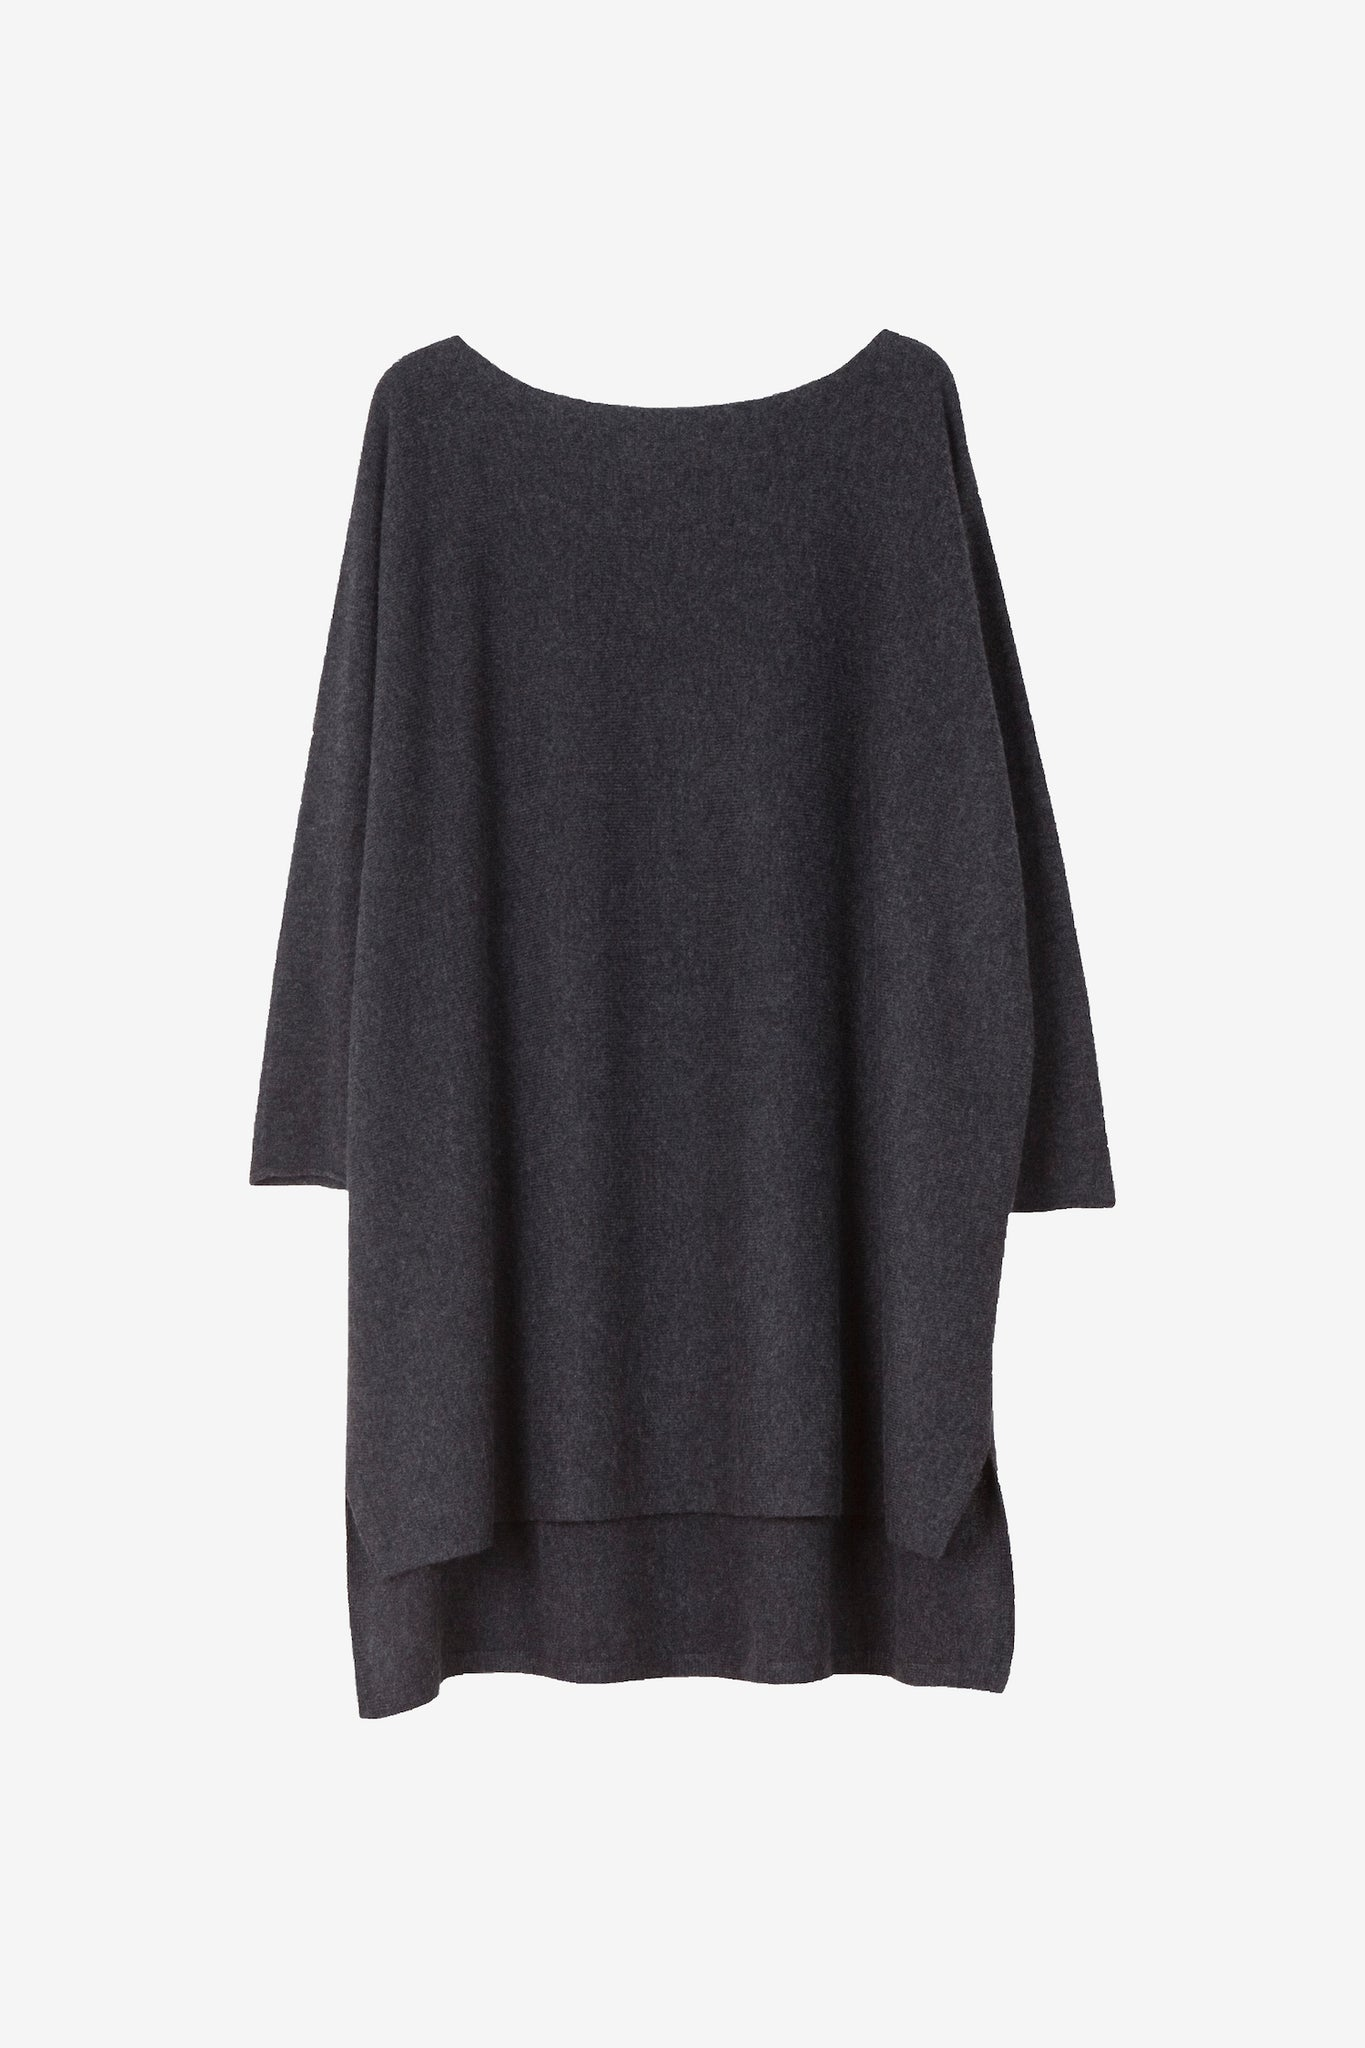 Eelia tunic in dark grey